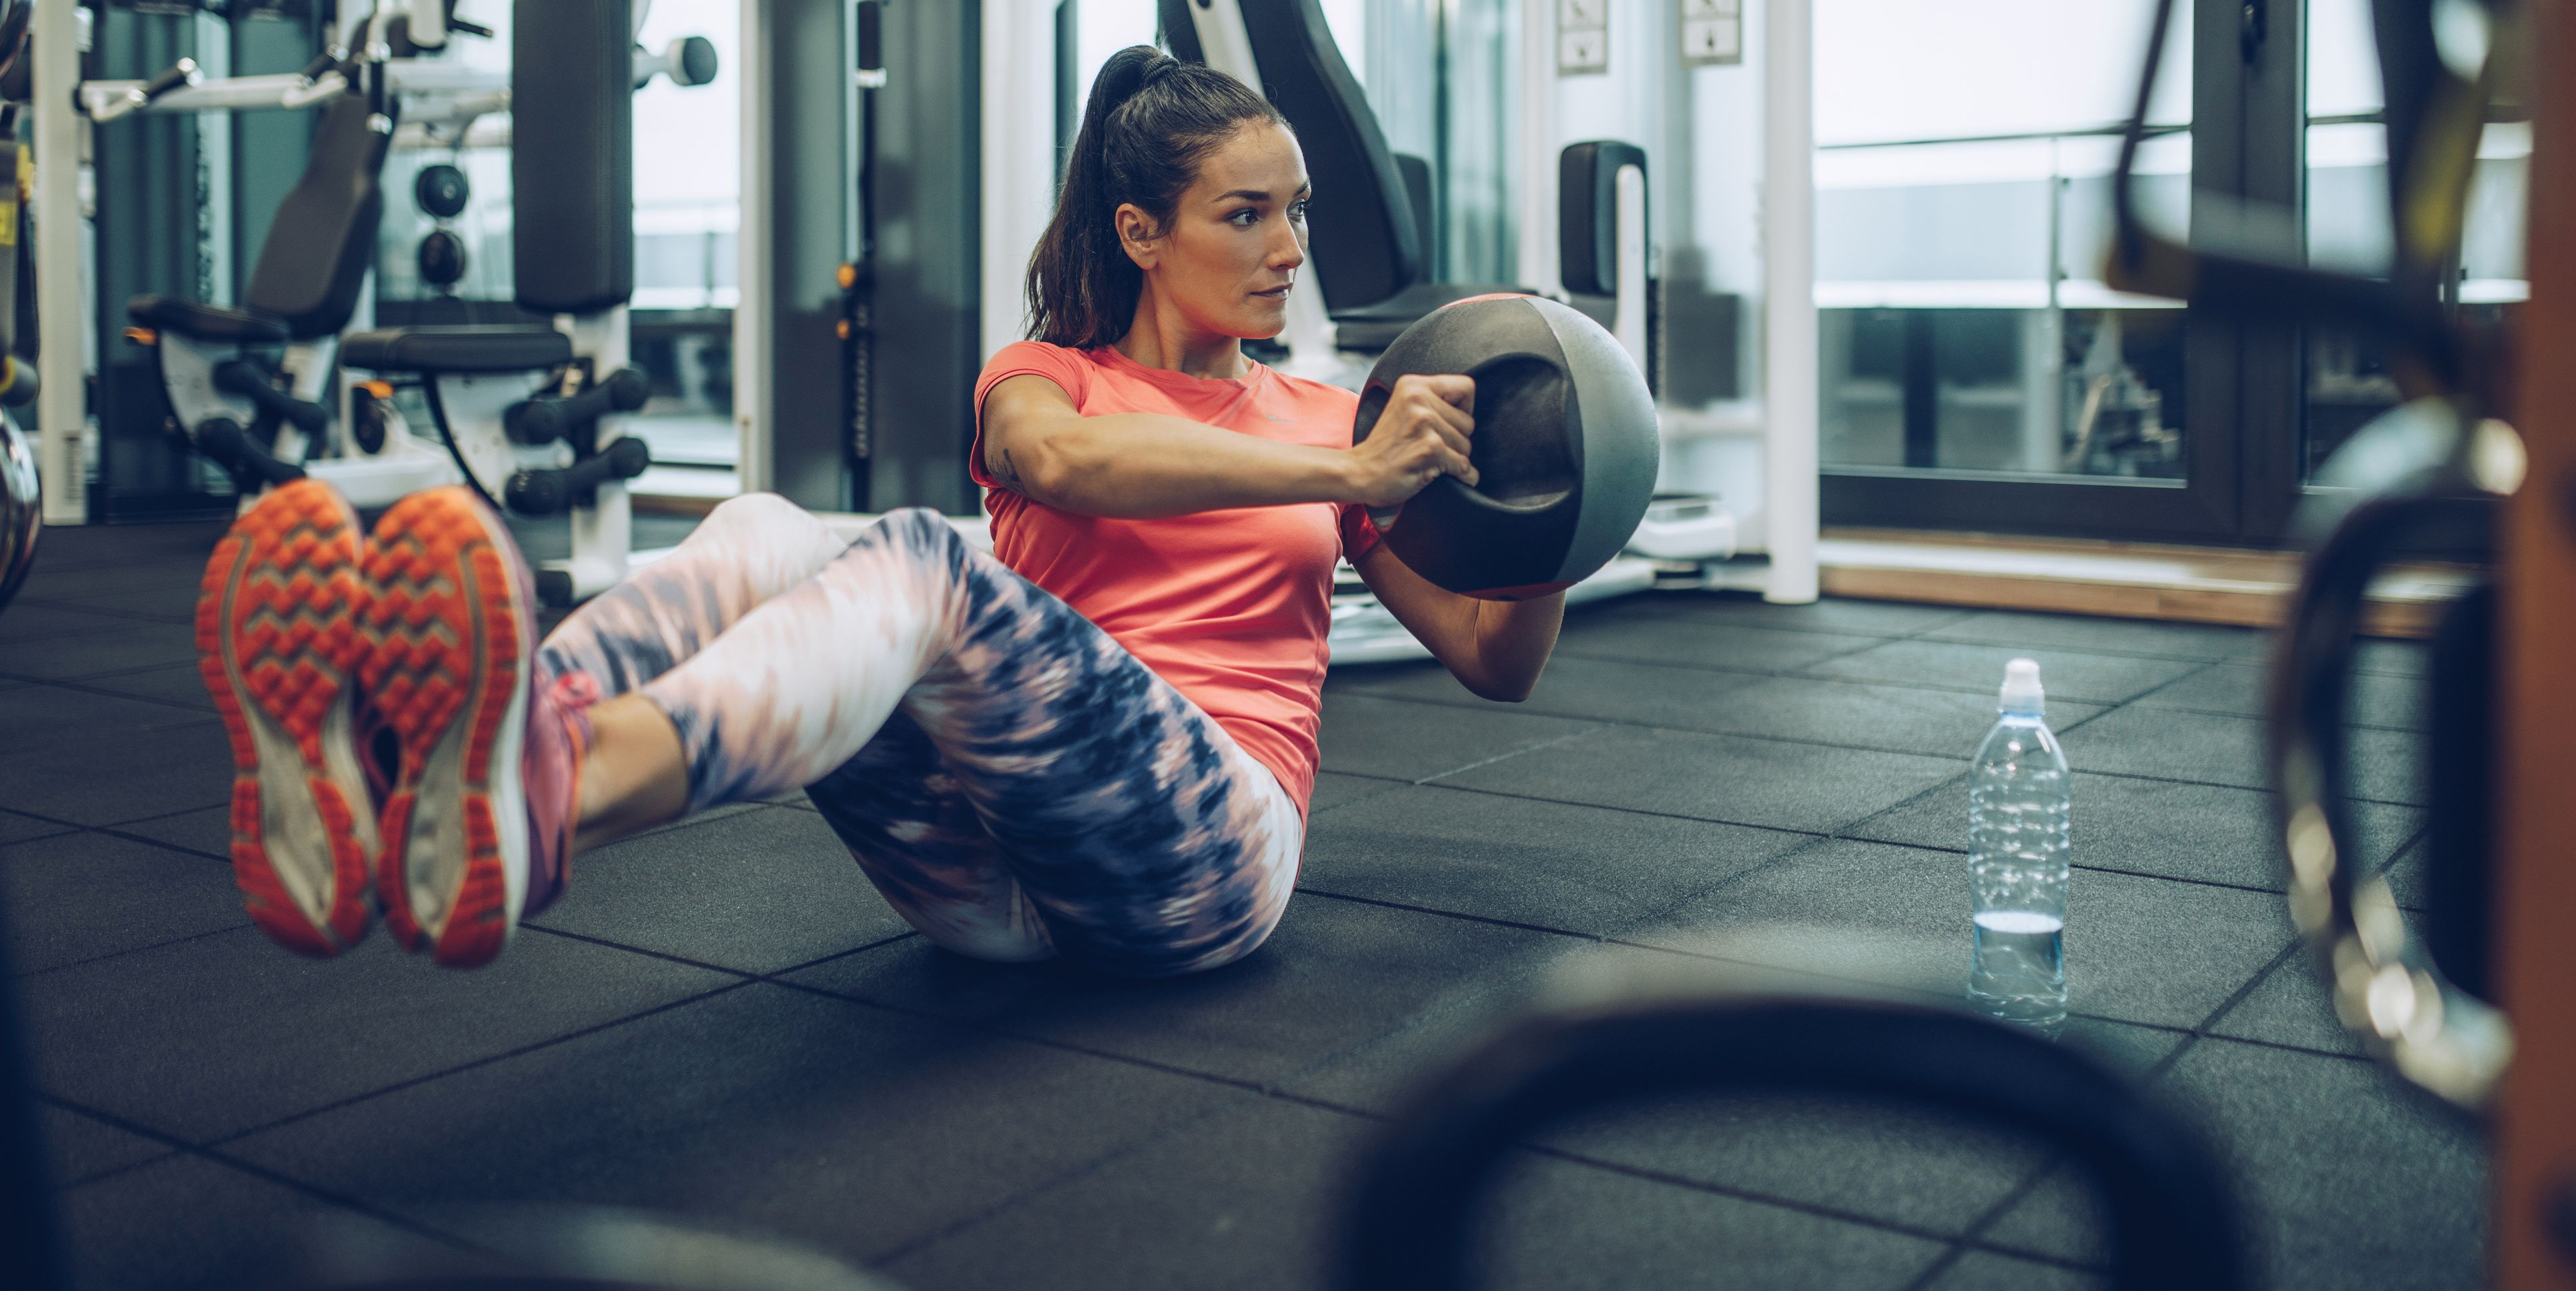 Athletic woman exercising sit-ups with medicine ball in a health club.